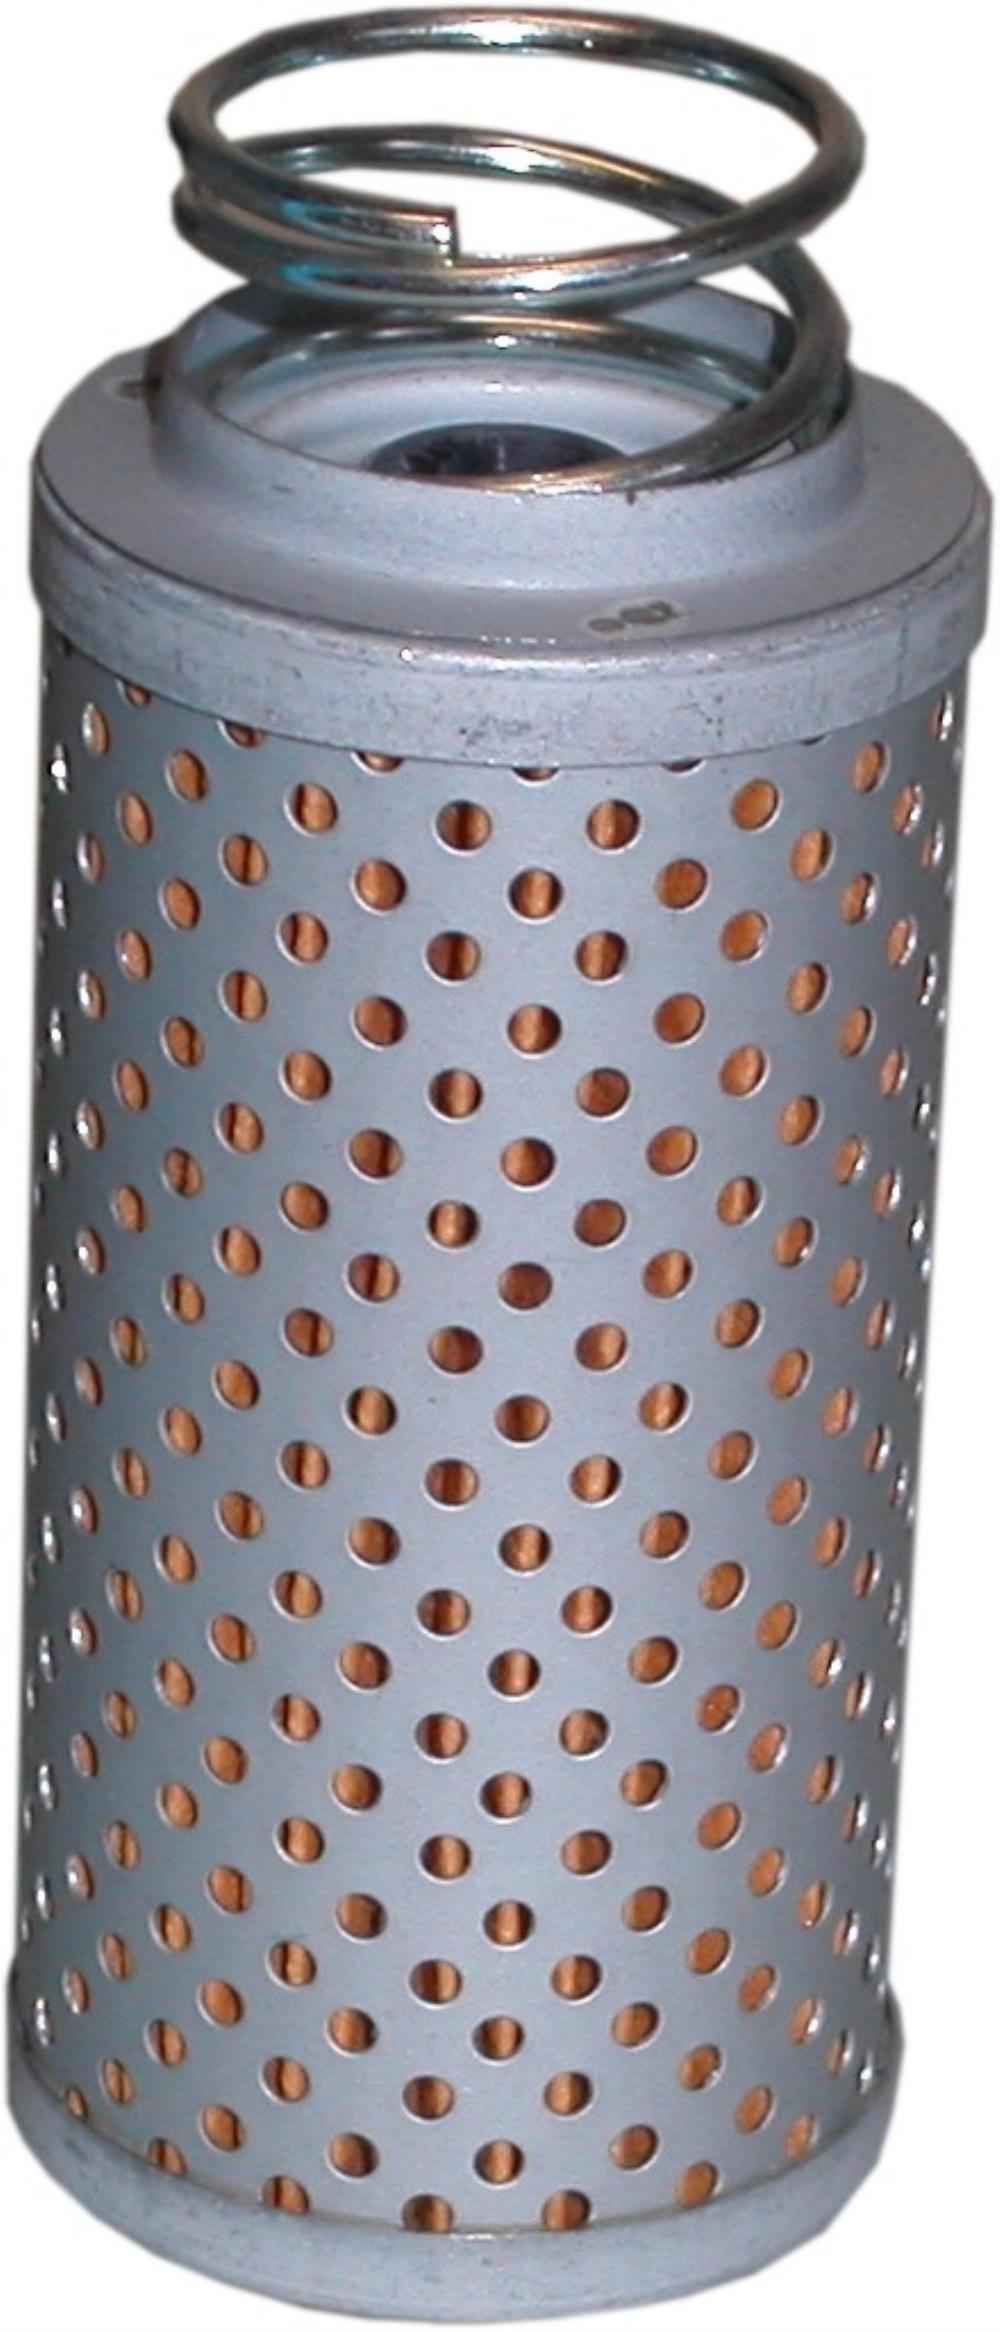 Oil Filter for 1986 Moto Guzzi V 65 Florida